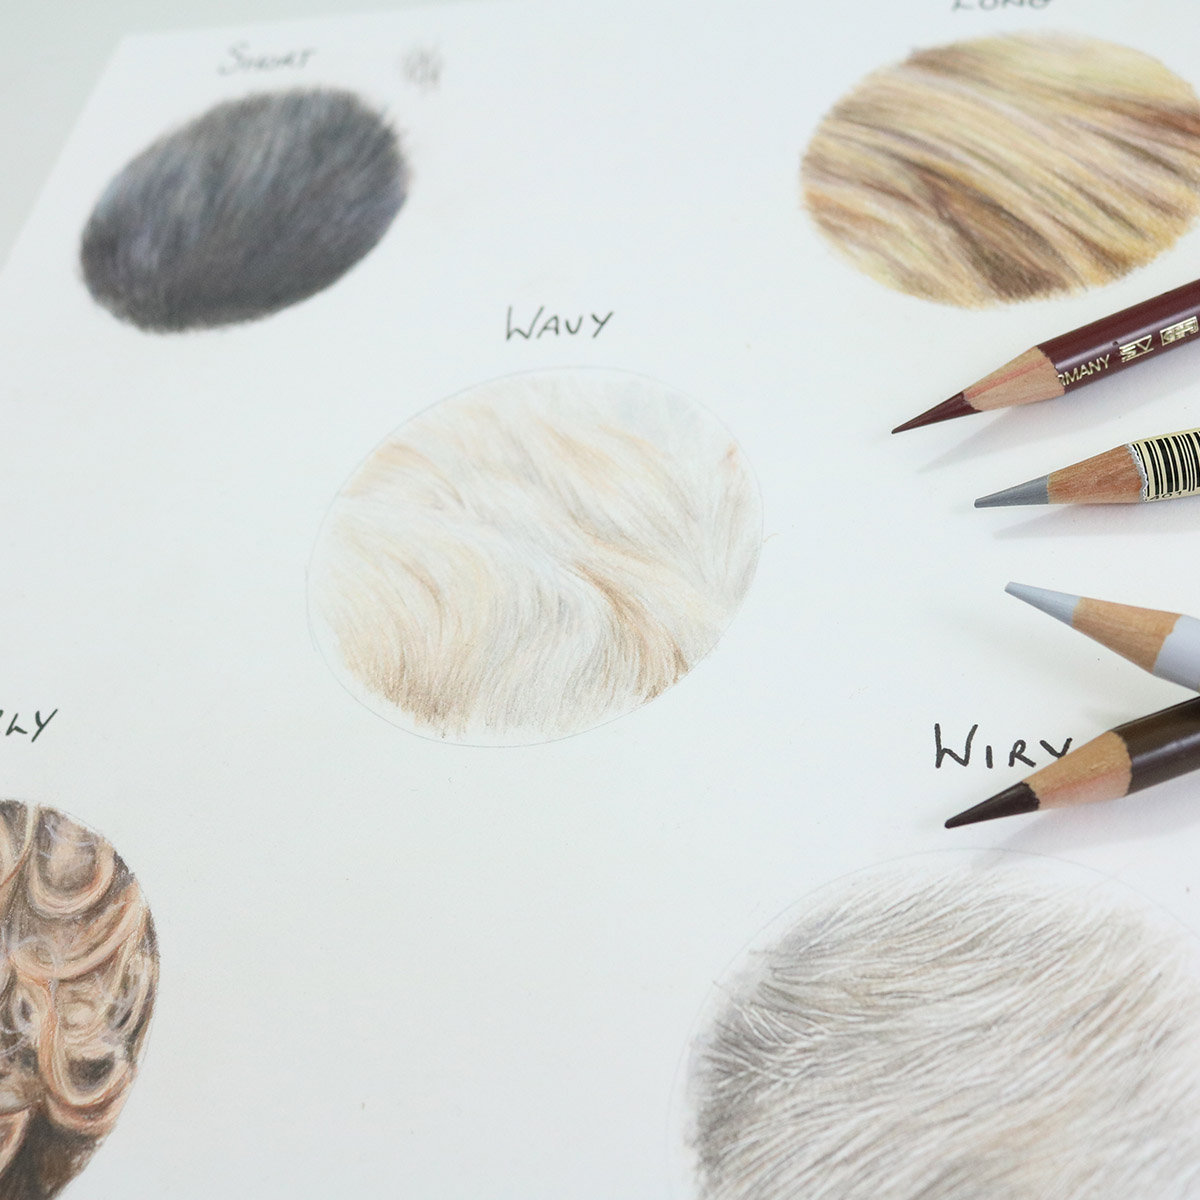 Well thought out and clear tutorials are exactly what re on offer which helps you avoid mistakes and grow your ability